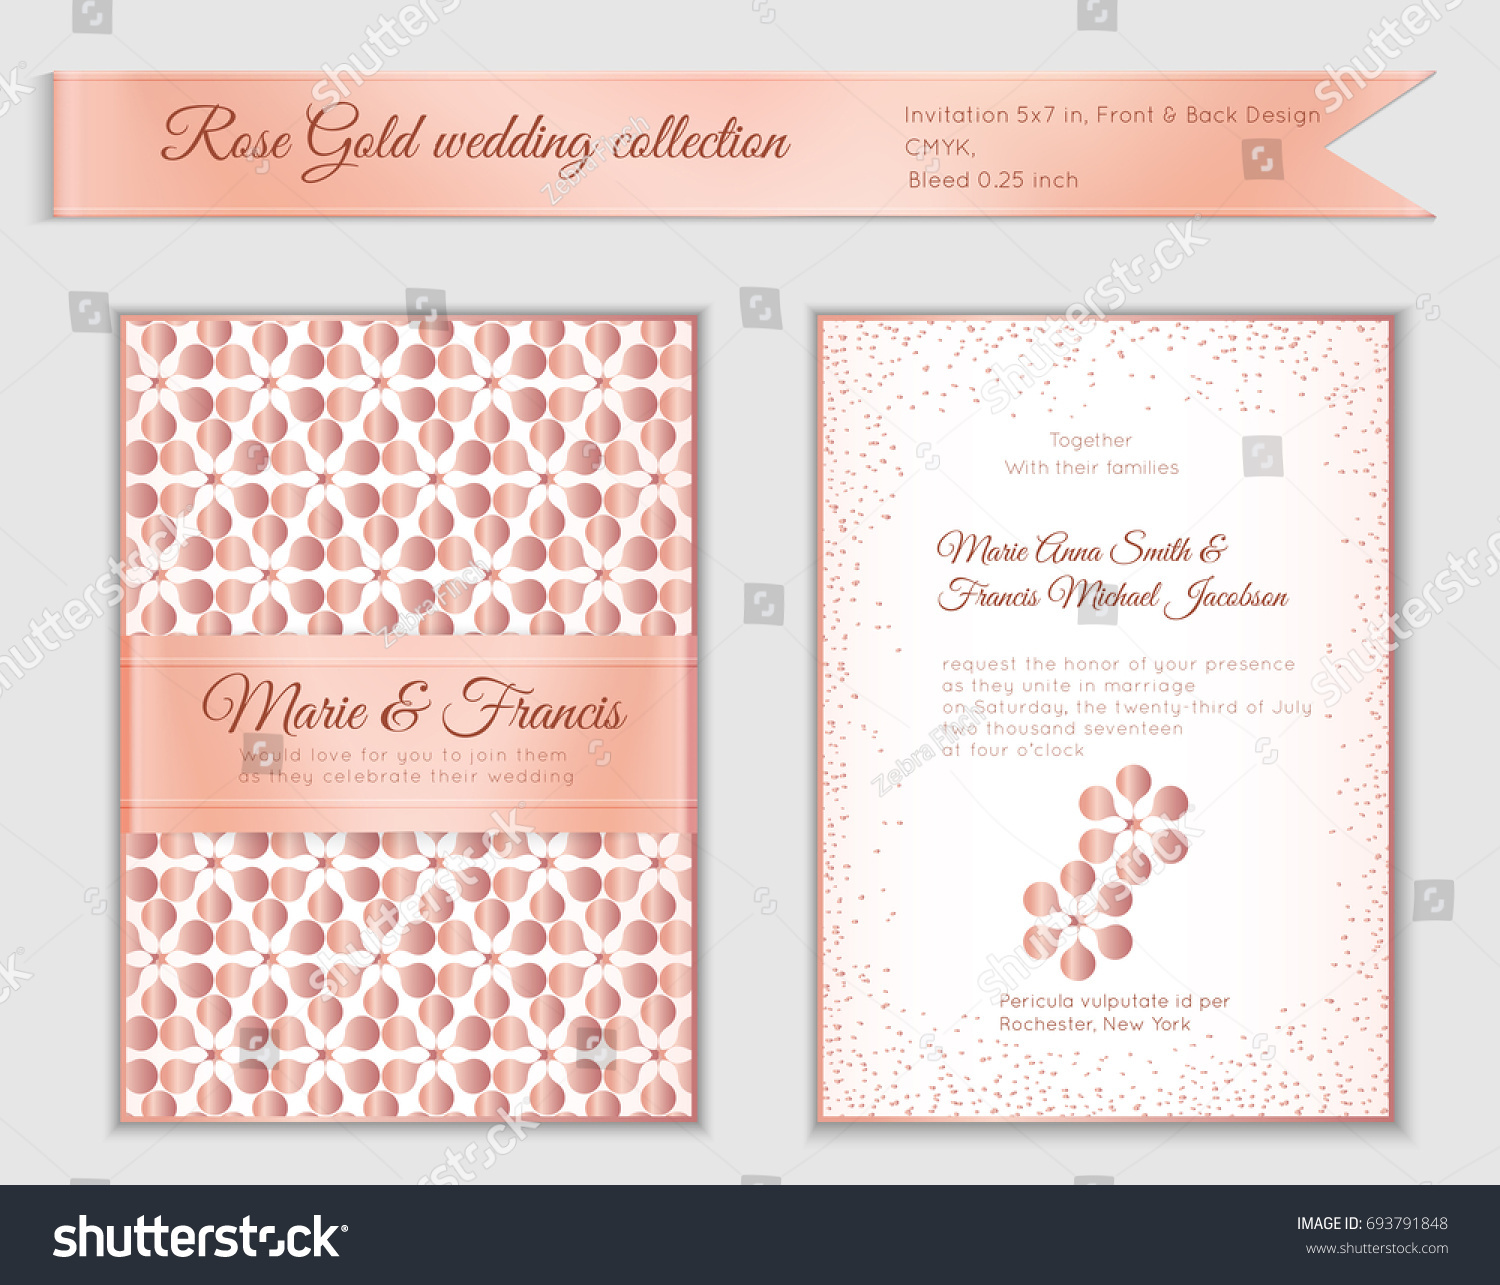 Luxury Wedding Invitation Template Rose Gold Stock Vector HD ...